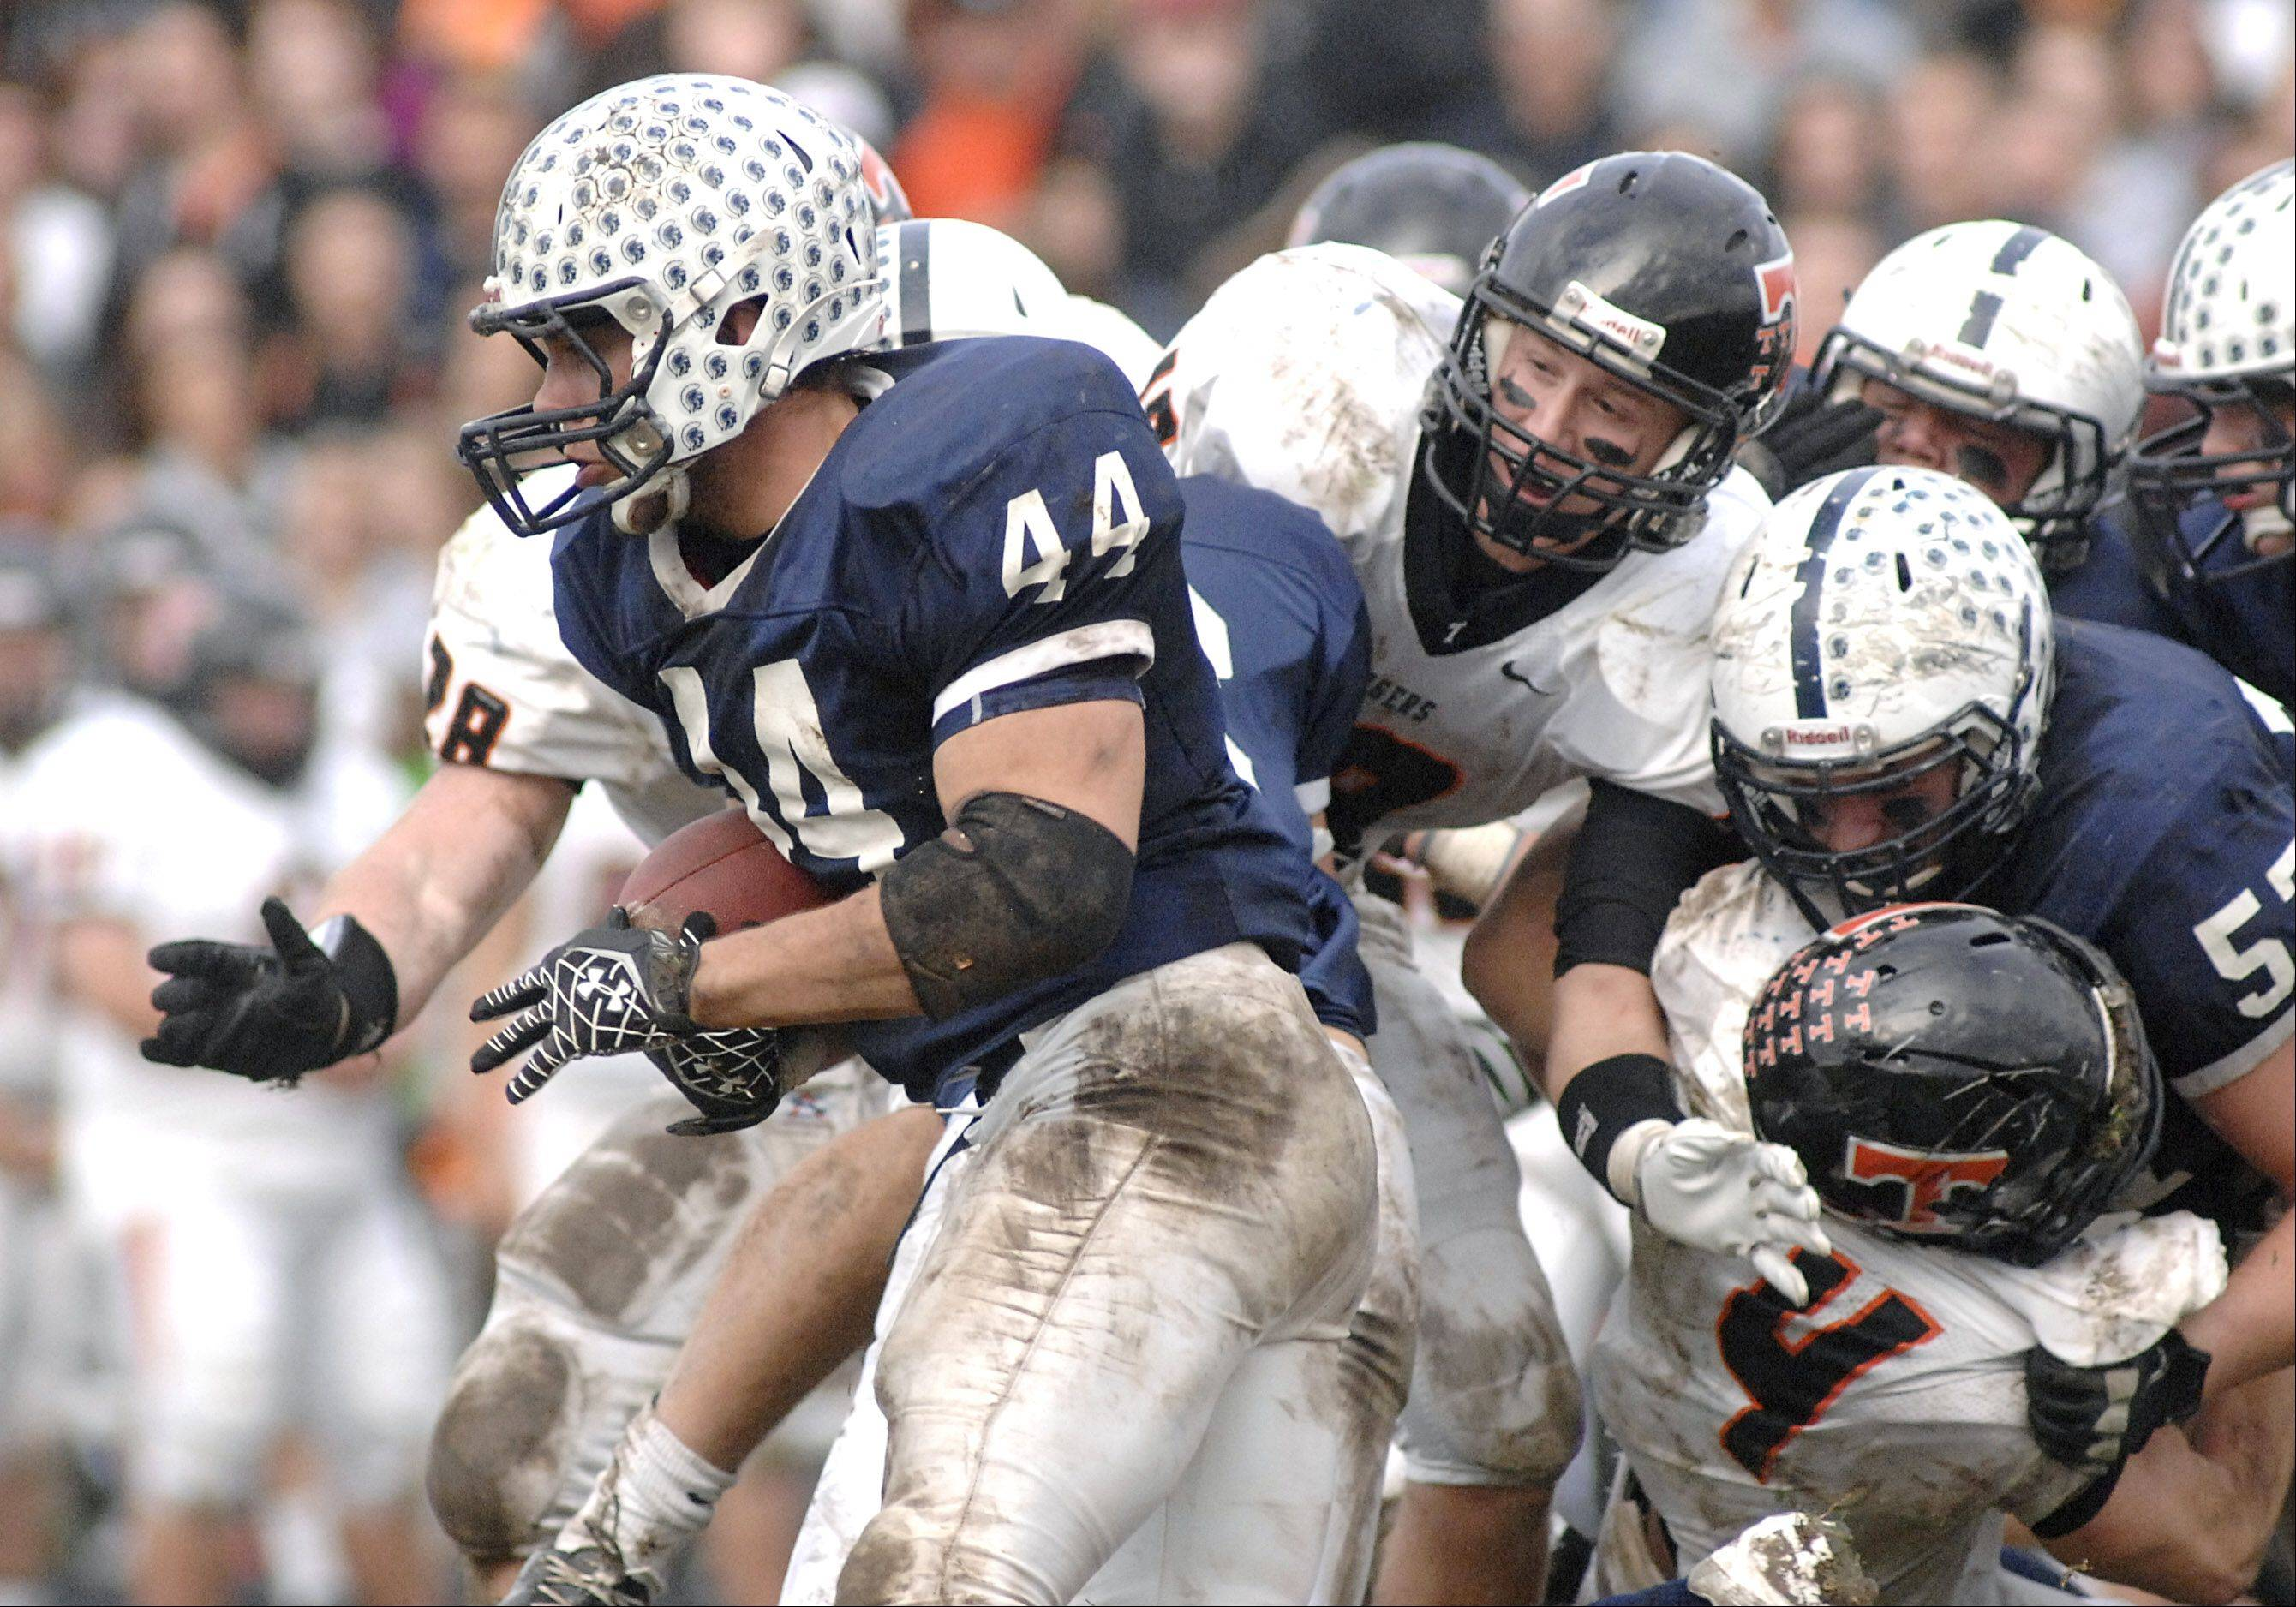 Cary-Grove's Kyle Norberg sprints past a pile up of Trojans and Crystal Lake Central Tigers in the fourth quarter.